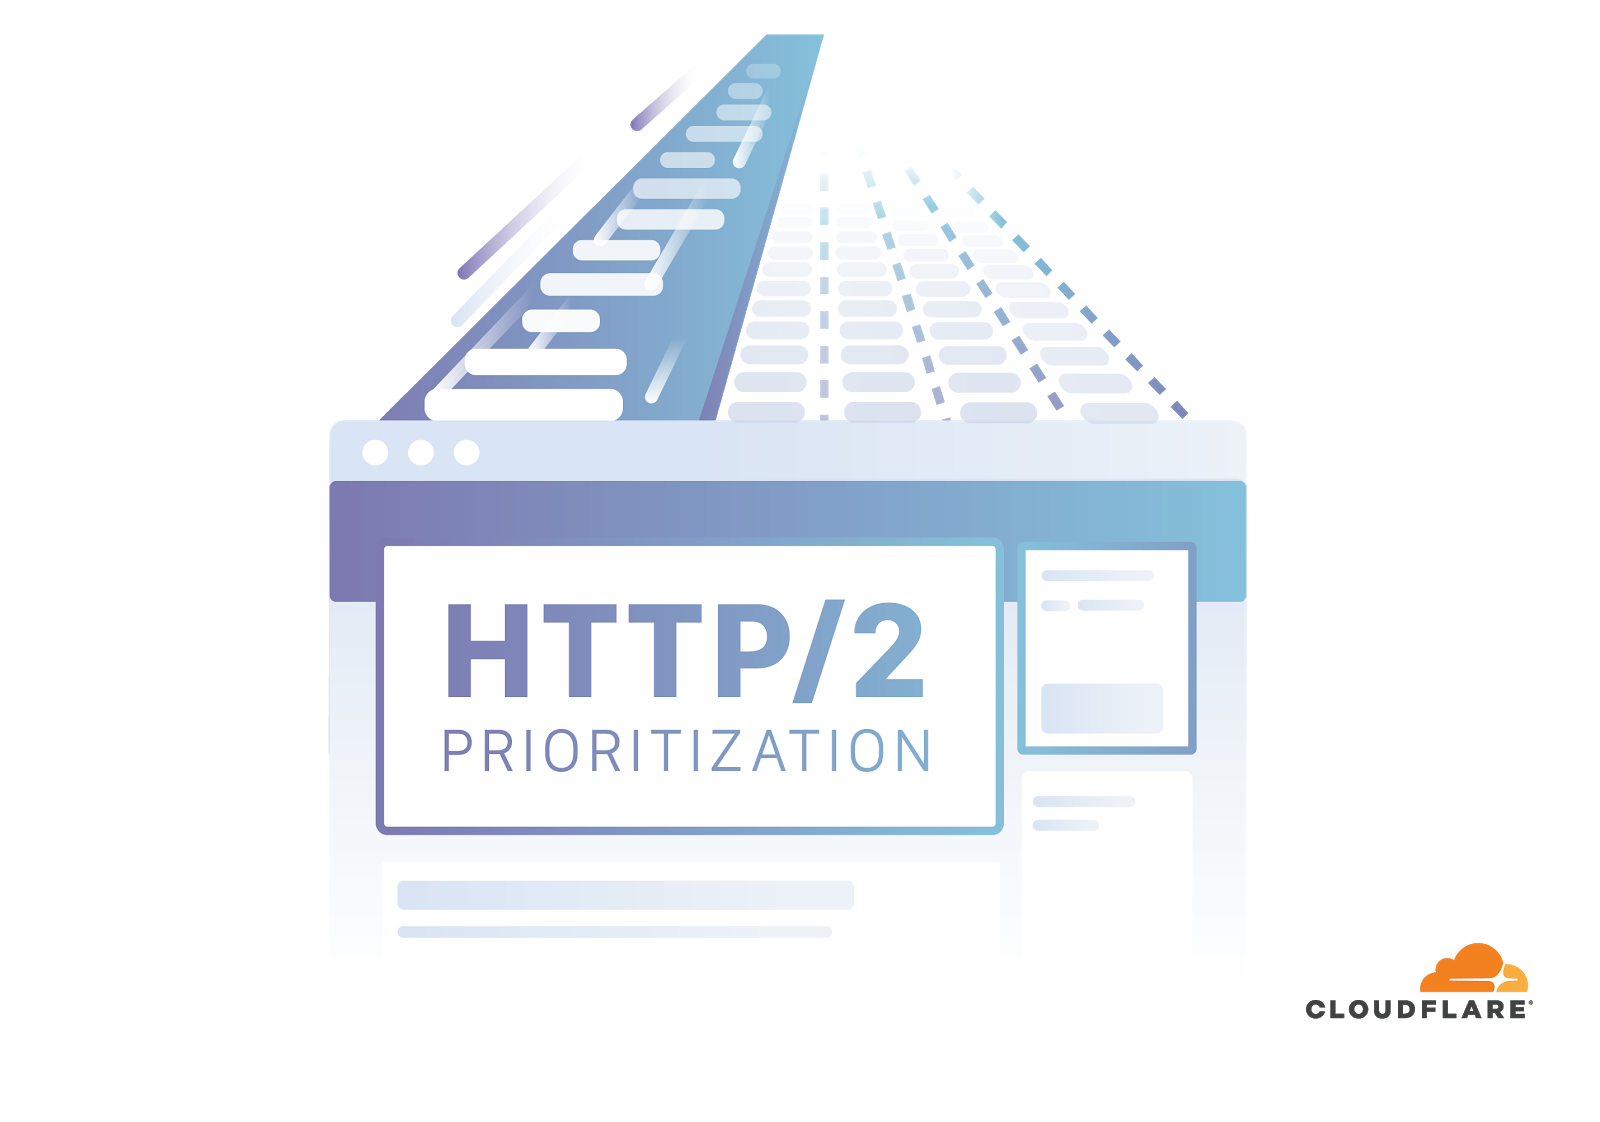 HTTP/2 Prioritization